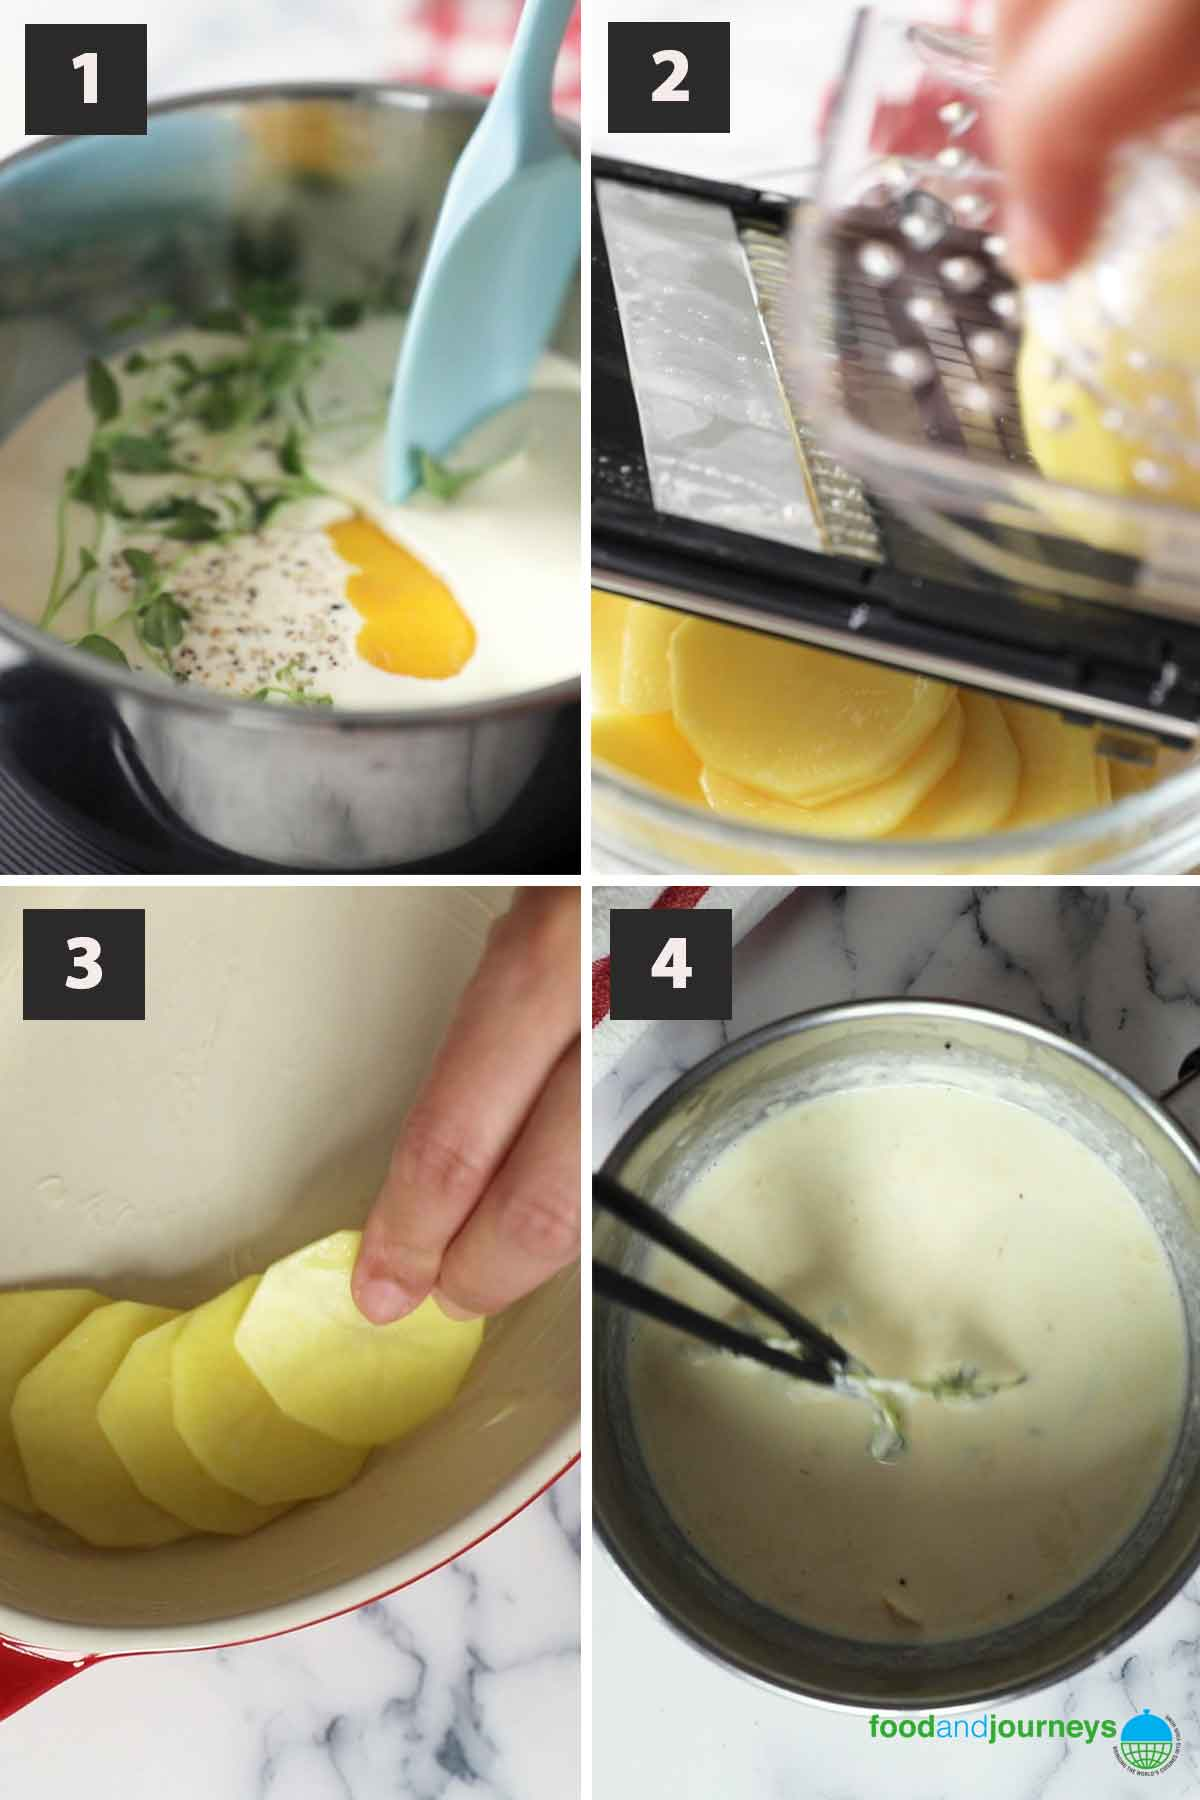 First part of a collage of images showing the step by step process of preparing kartoffelgratin.